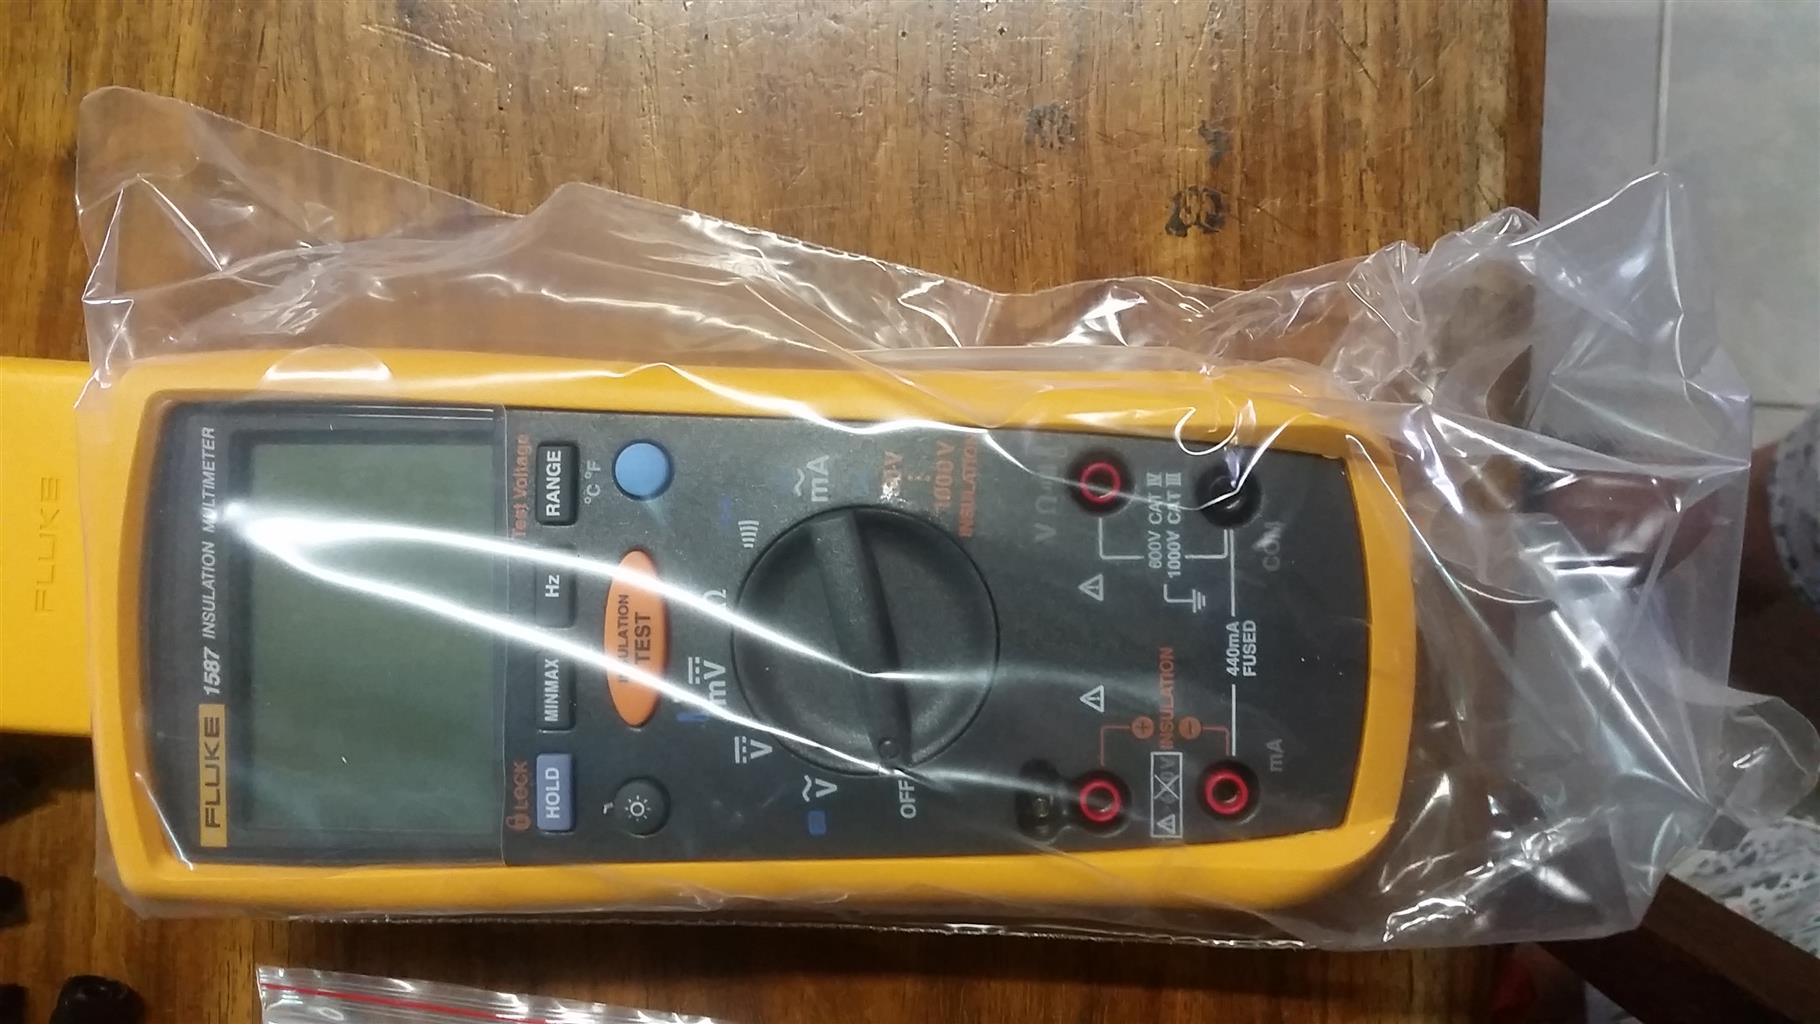 Fluke 1587 MDTCAL MDT Advanced Insulation Motor and Drive Troubleshooting  Multimeter Kit with a NIST